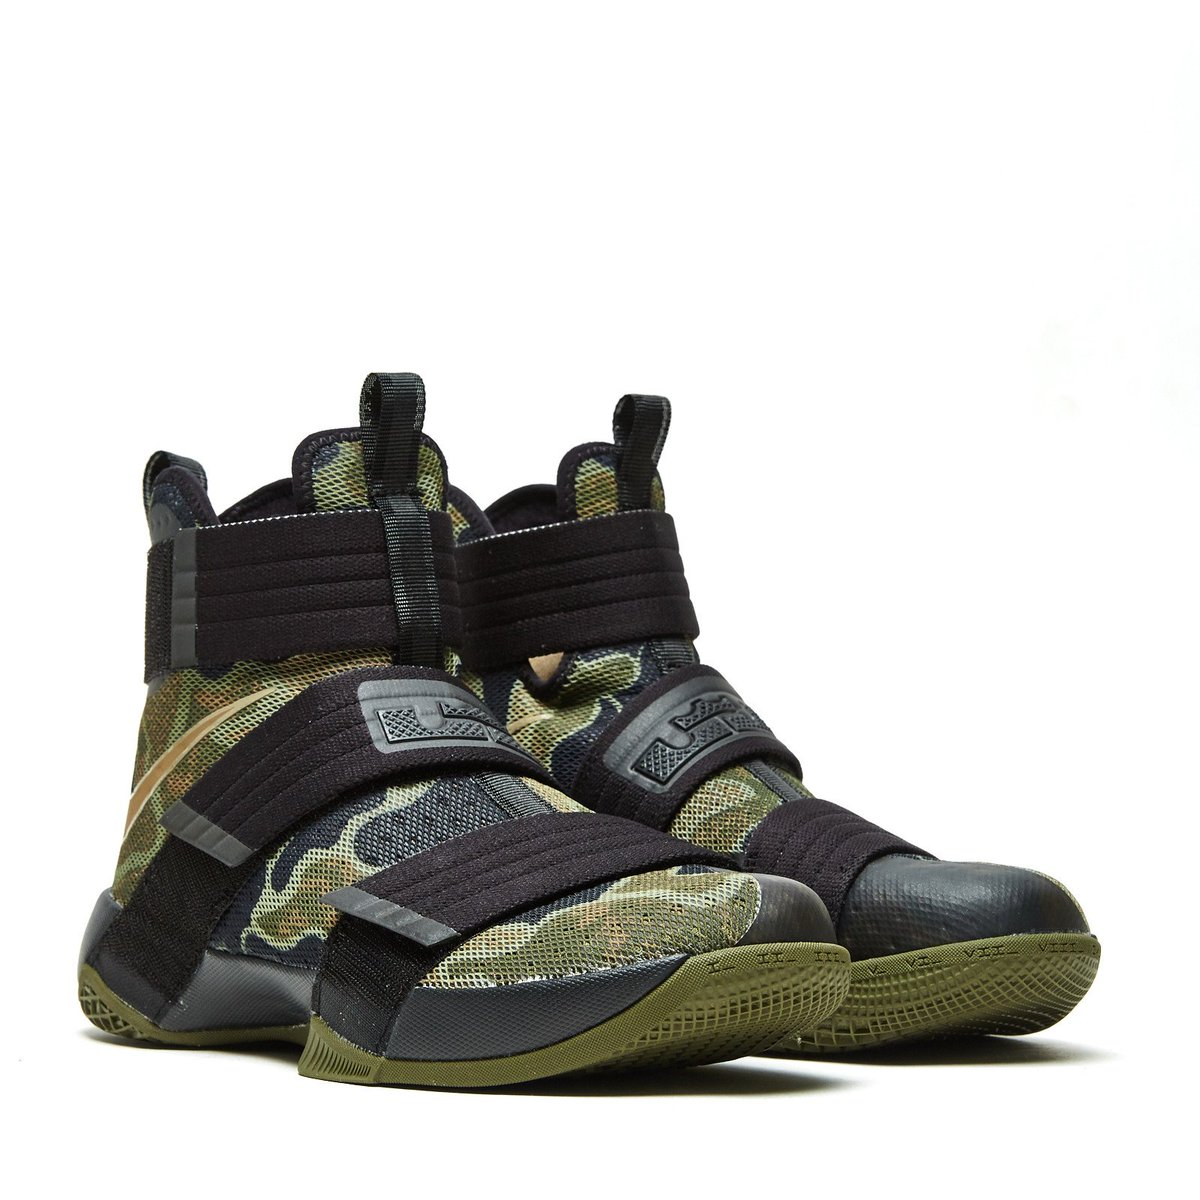 best website 06780 1dbea  Nike  LeBron Soldier 10  Camo  SFG available in-store   online here   http   on.unknwn.com 2dEtio3 pic.twitter.com K0nR66H8tZ